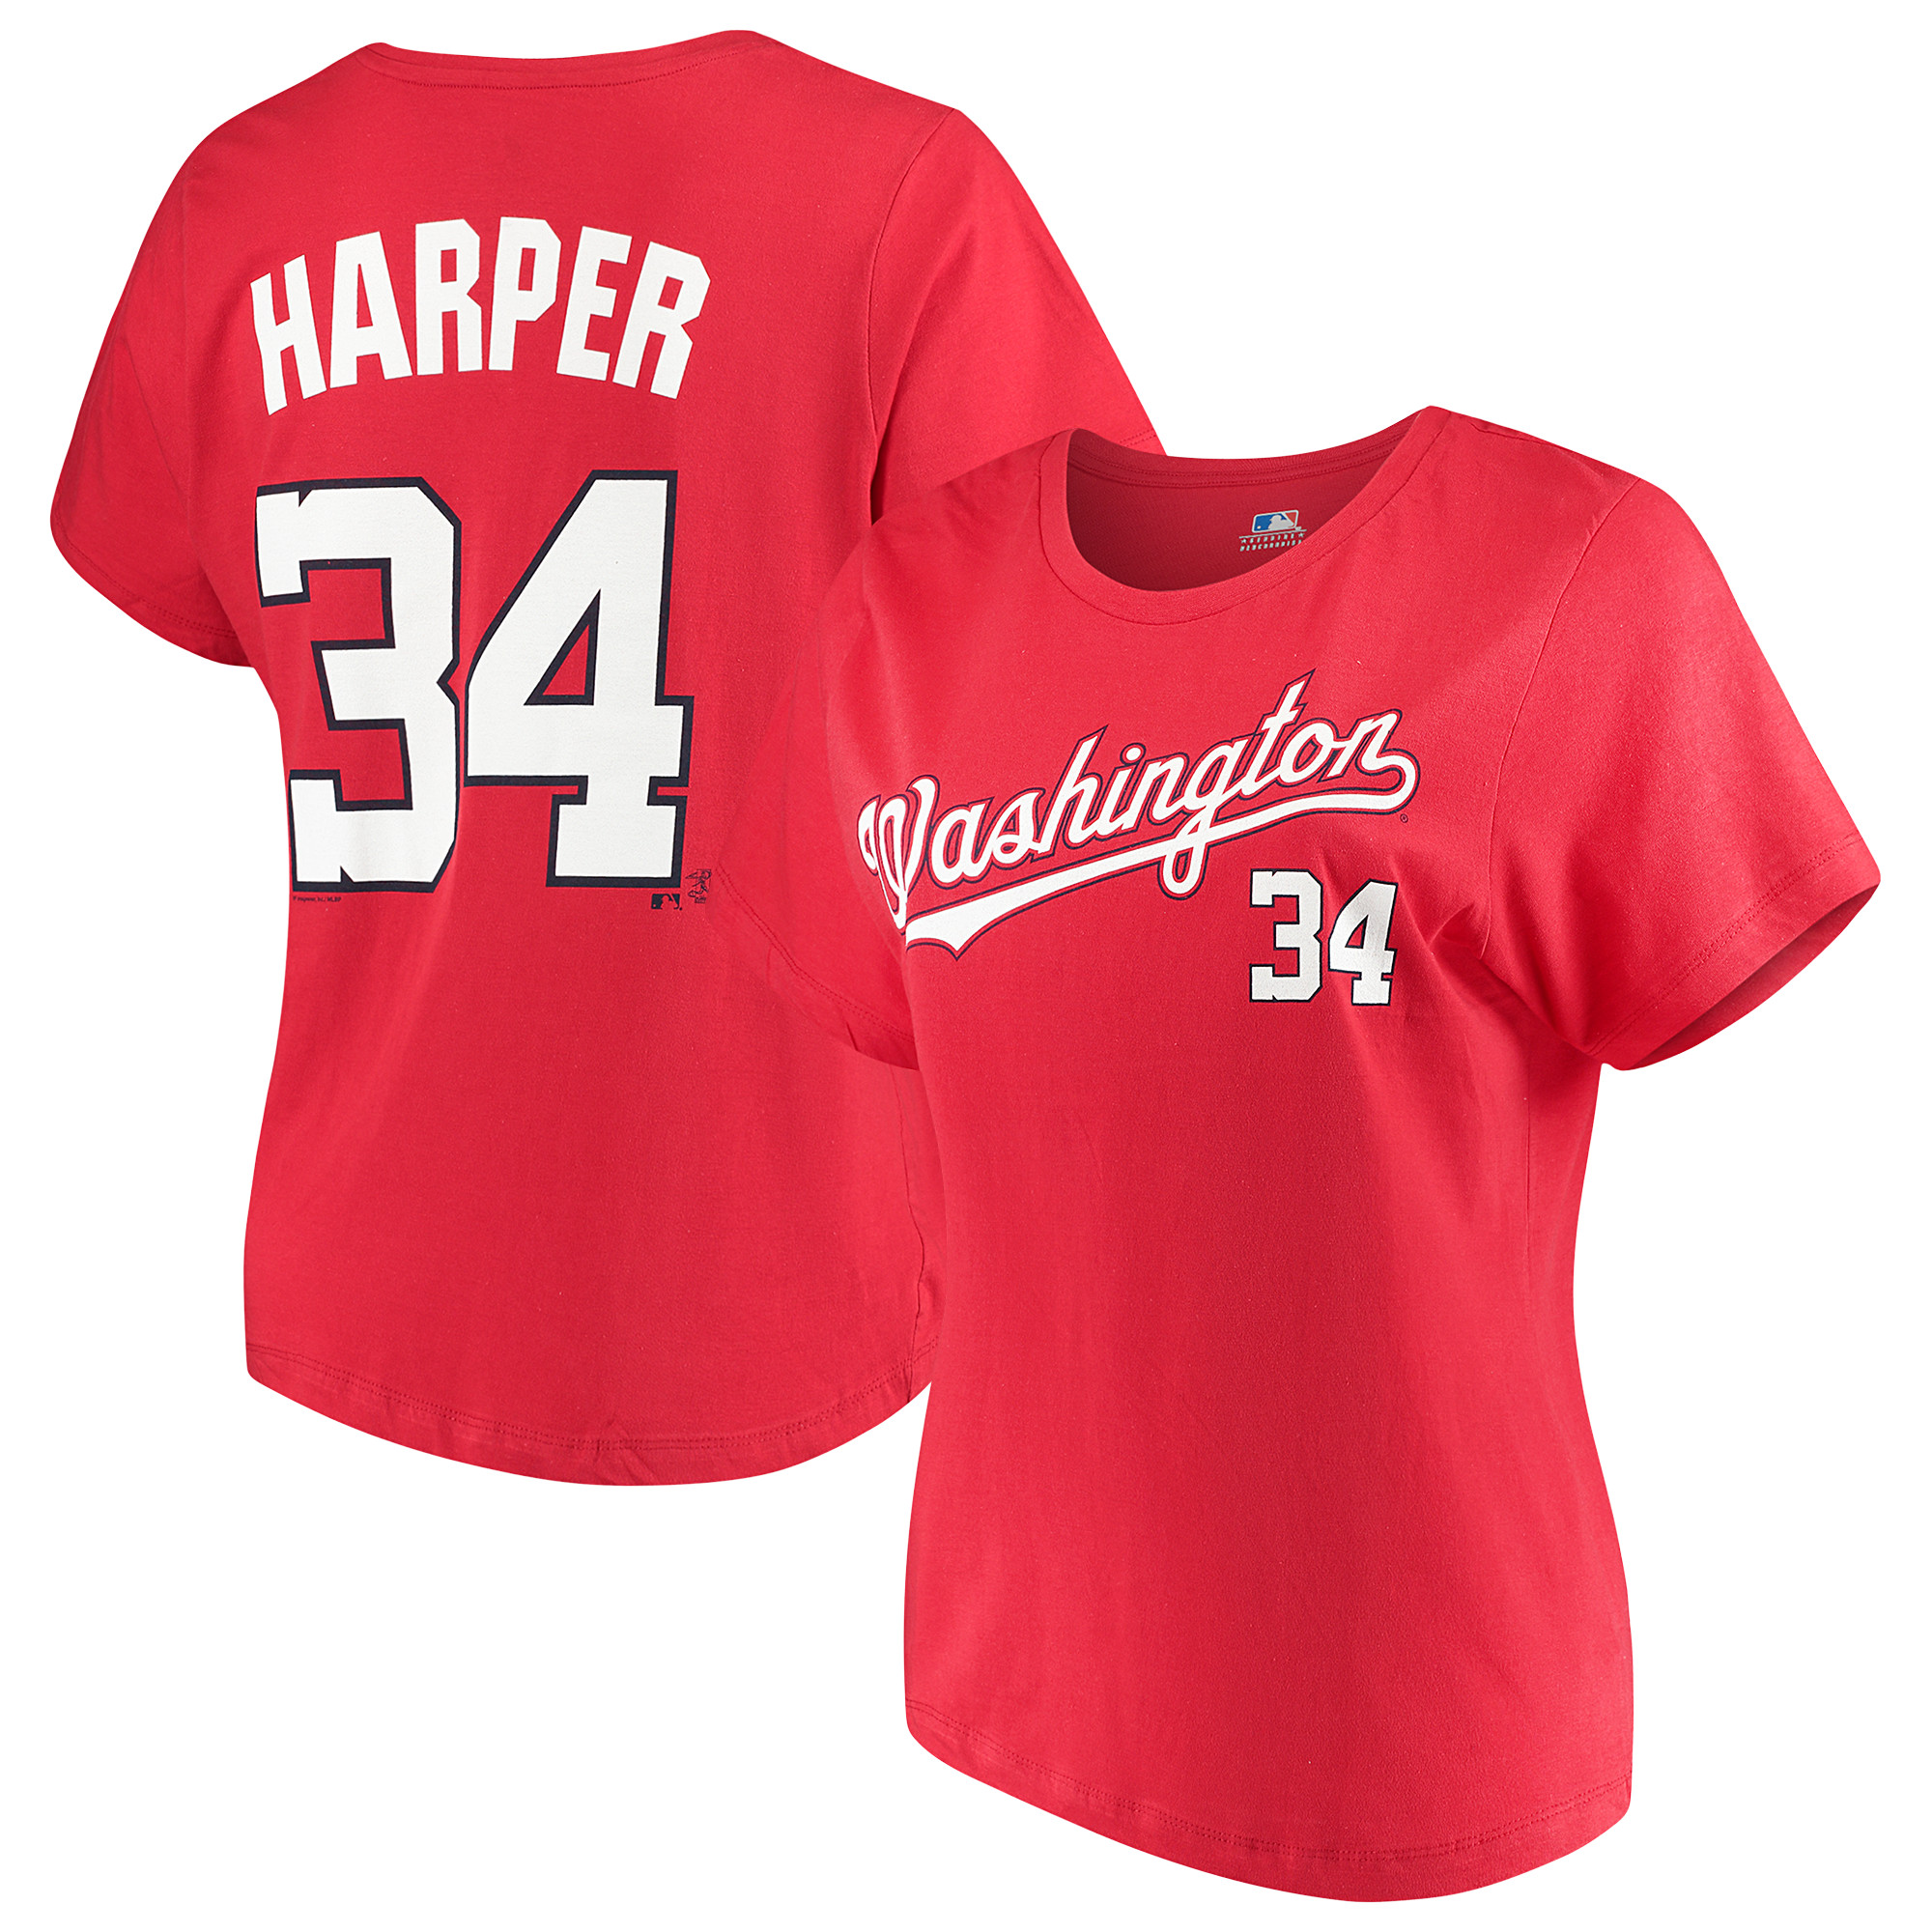 Women's Majestic Bryce Harper Red Washington Nationals Team Name & Number T-Shirt